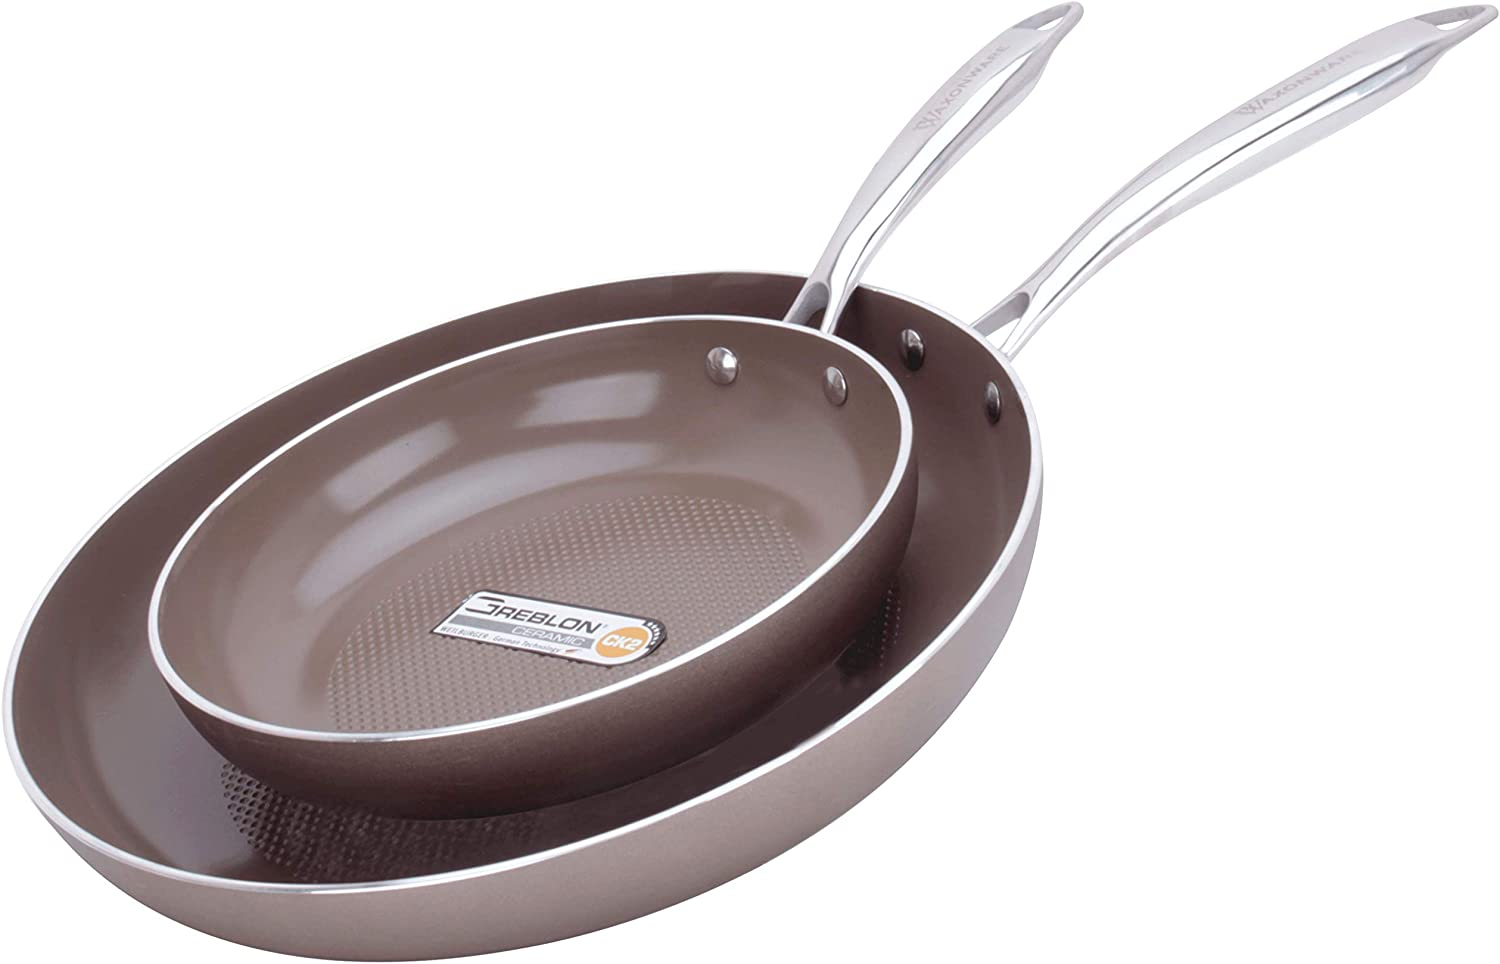 WaxonWare 8.5 & 12 Inch Ceramic Nonstick Frying Pans, Non Toxic PTFE APEO PFOA Free Nonstick Skillets, Induction Compatible, Dishwasher & Oven Safe Omelette Fry Pan With German Coating (HIVE Series)